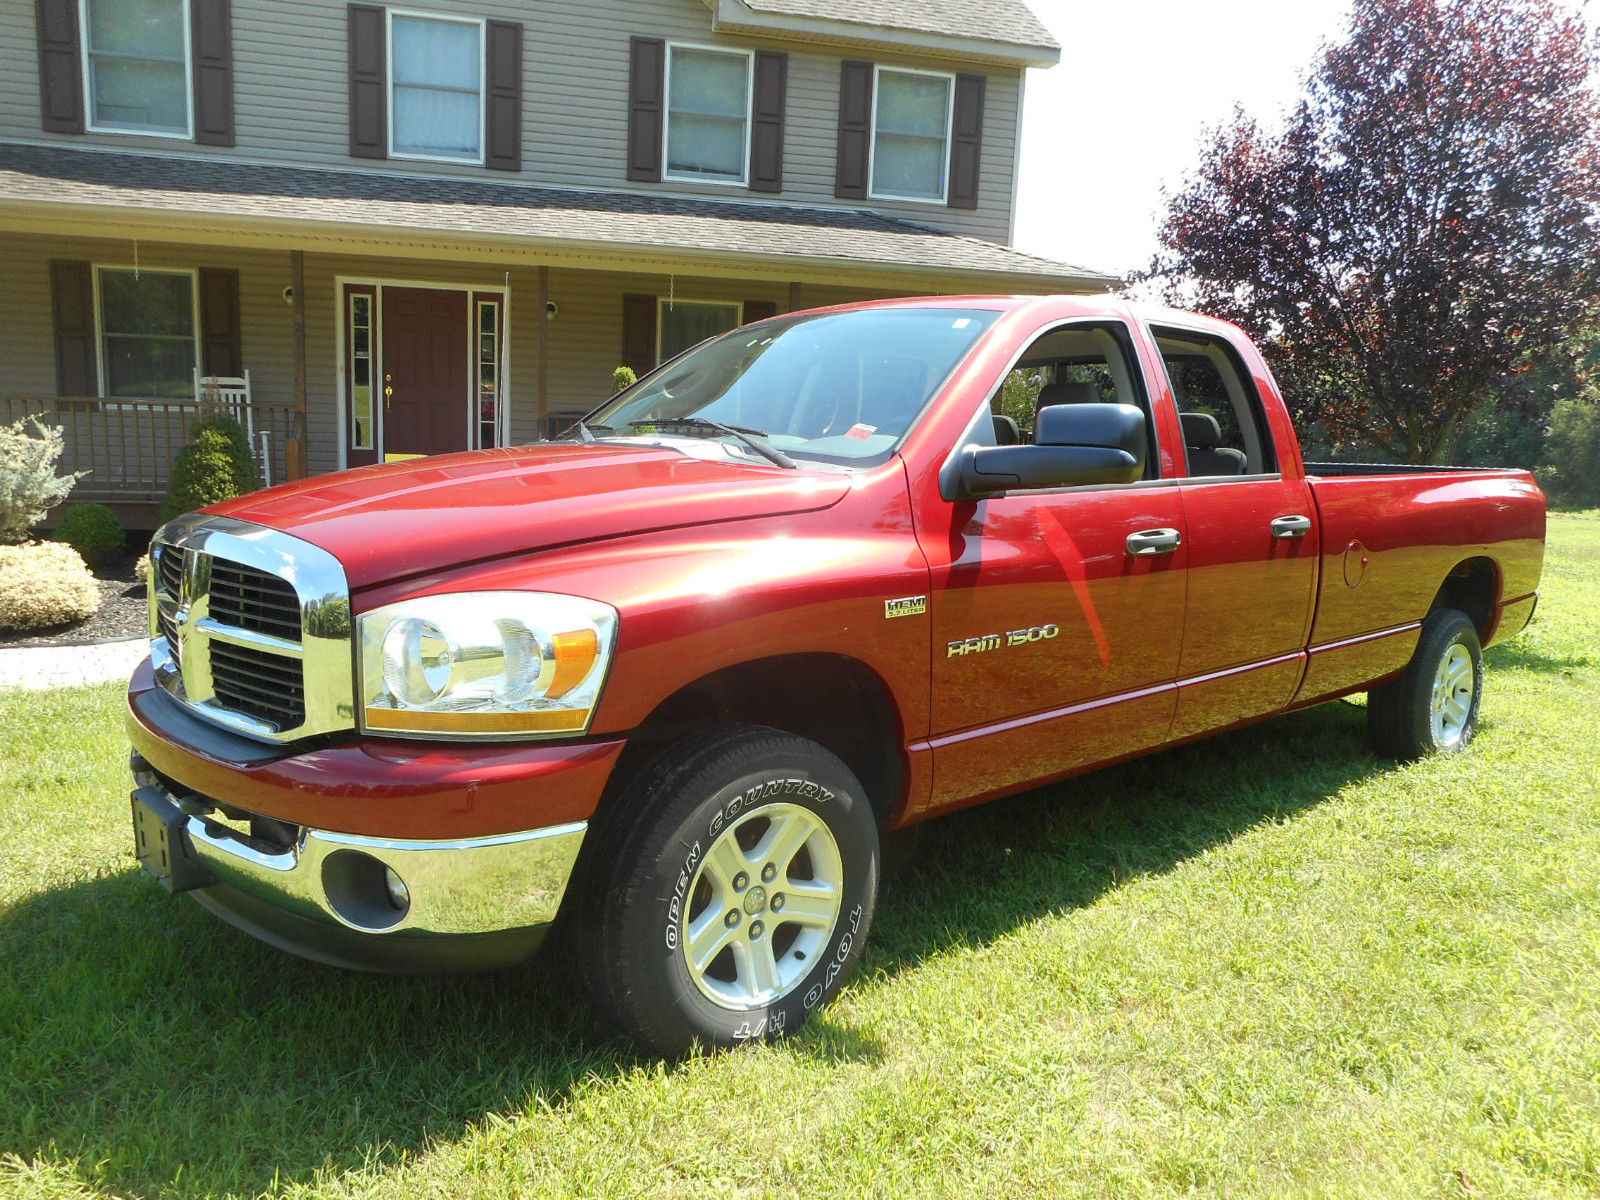 2006 dodge ram 1500 slt extended crew cab for sale - Crew cab dodge ram ...